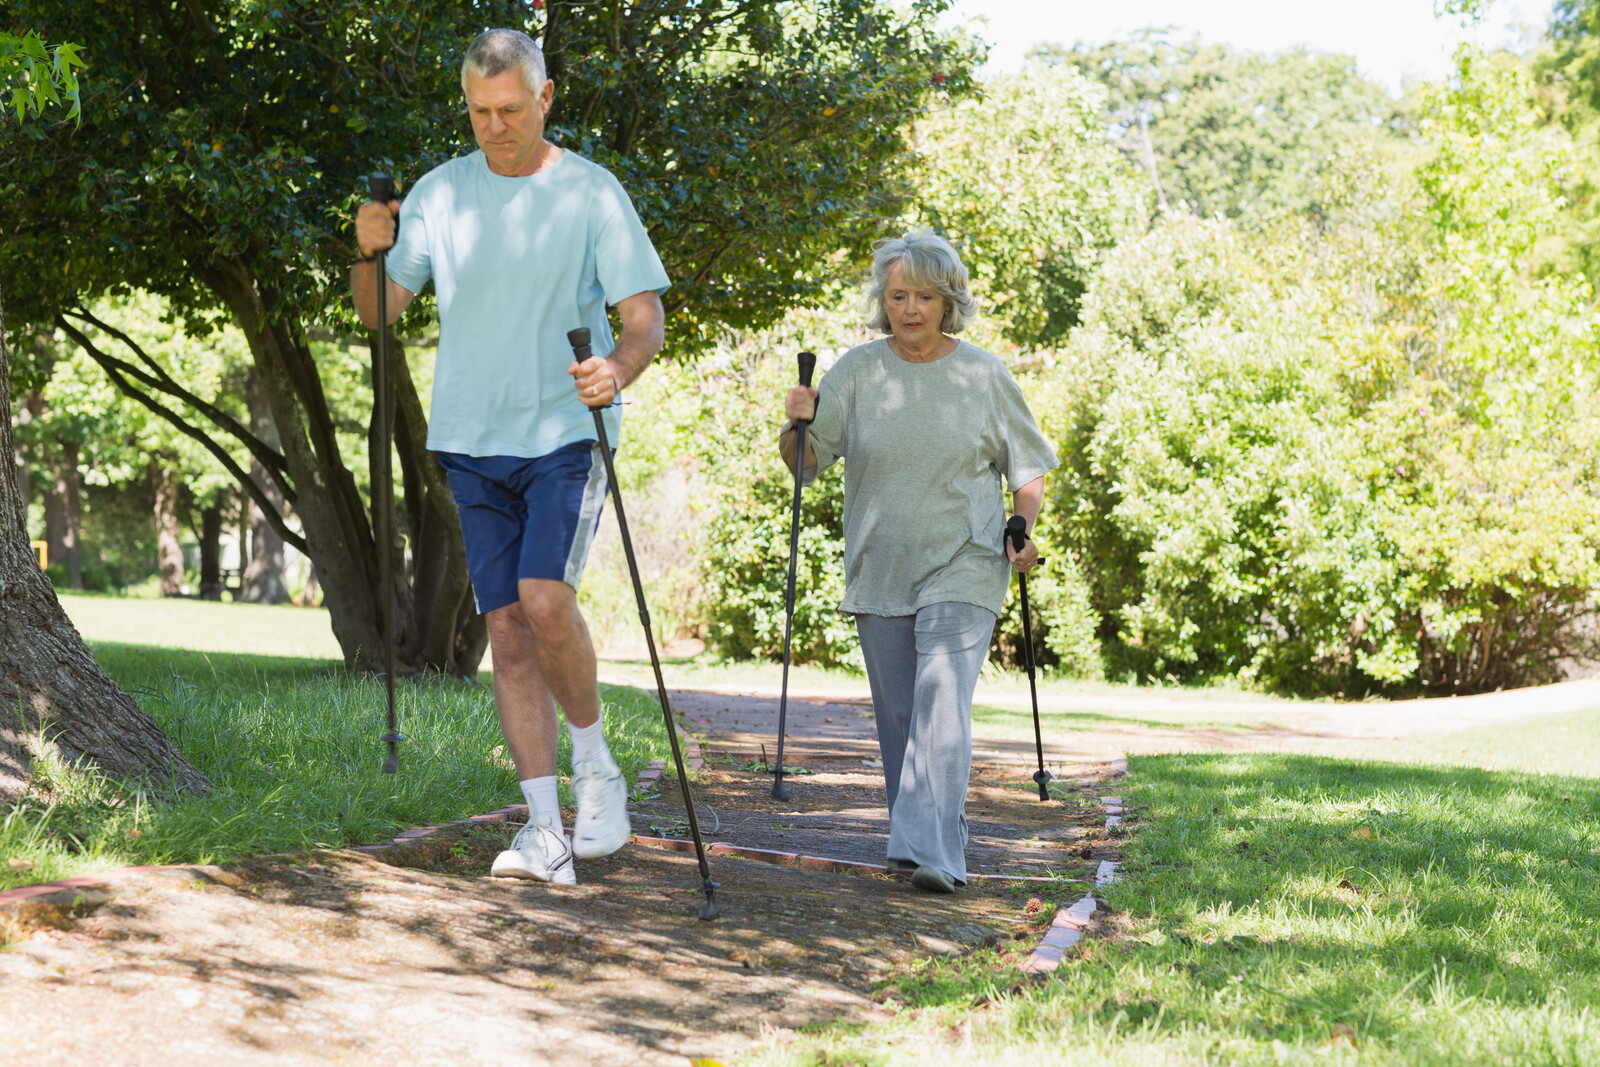 Senior couple nordic walking on pathway in the park on a sunny day with green grass and lots of trees